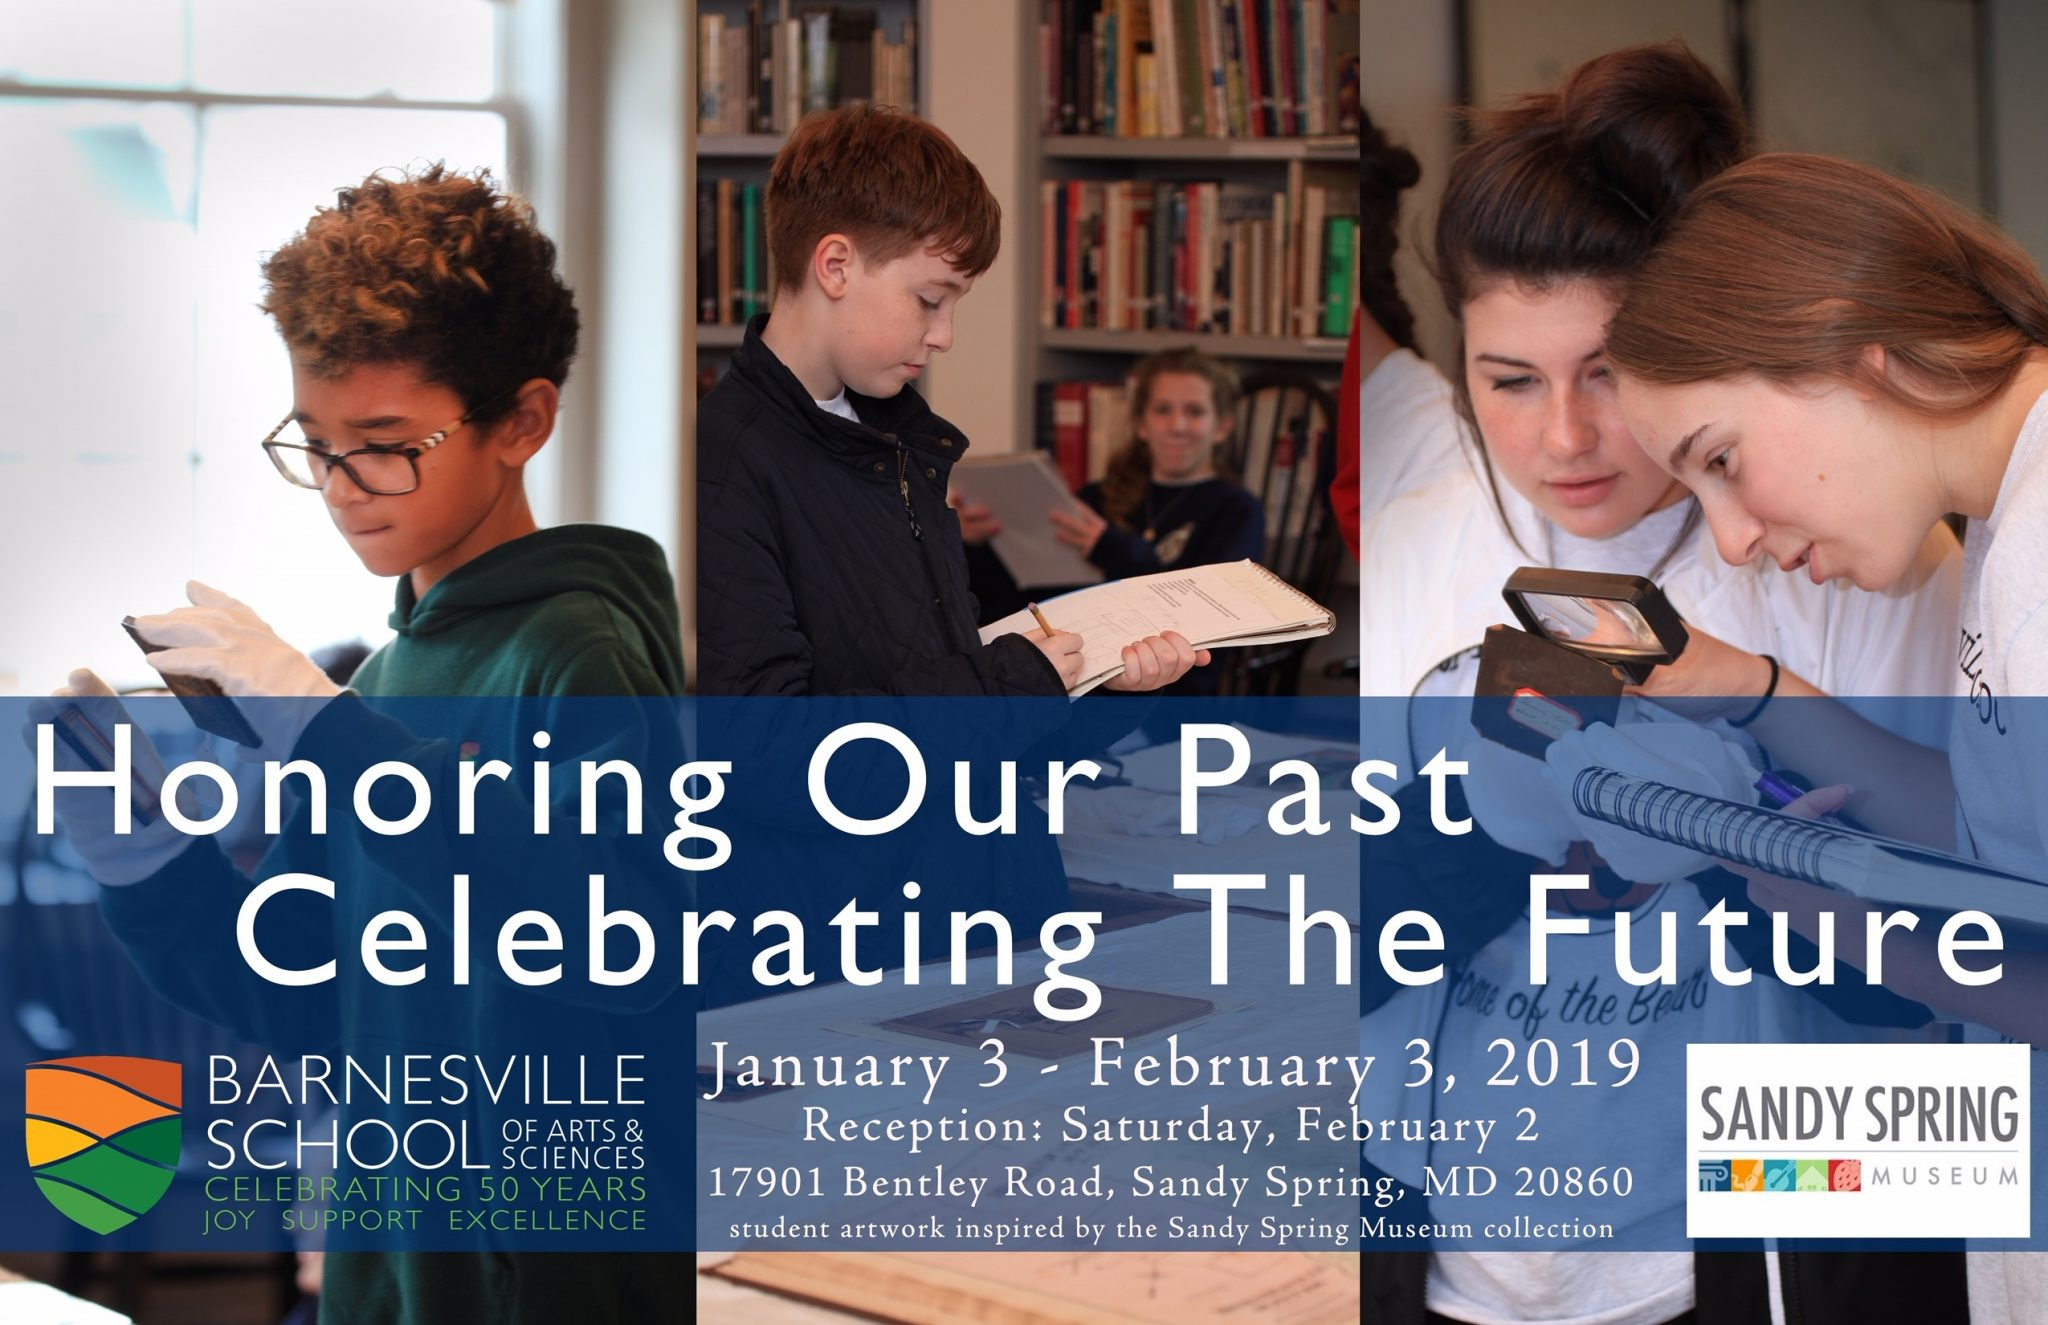 Honoring Our Past, Celebrating the Future postcard with students observing artifacts, the SSM logo and Barnesville School logo. Includes reception information